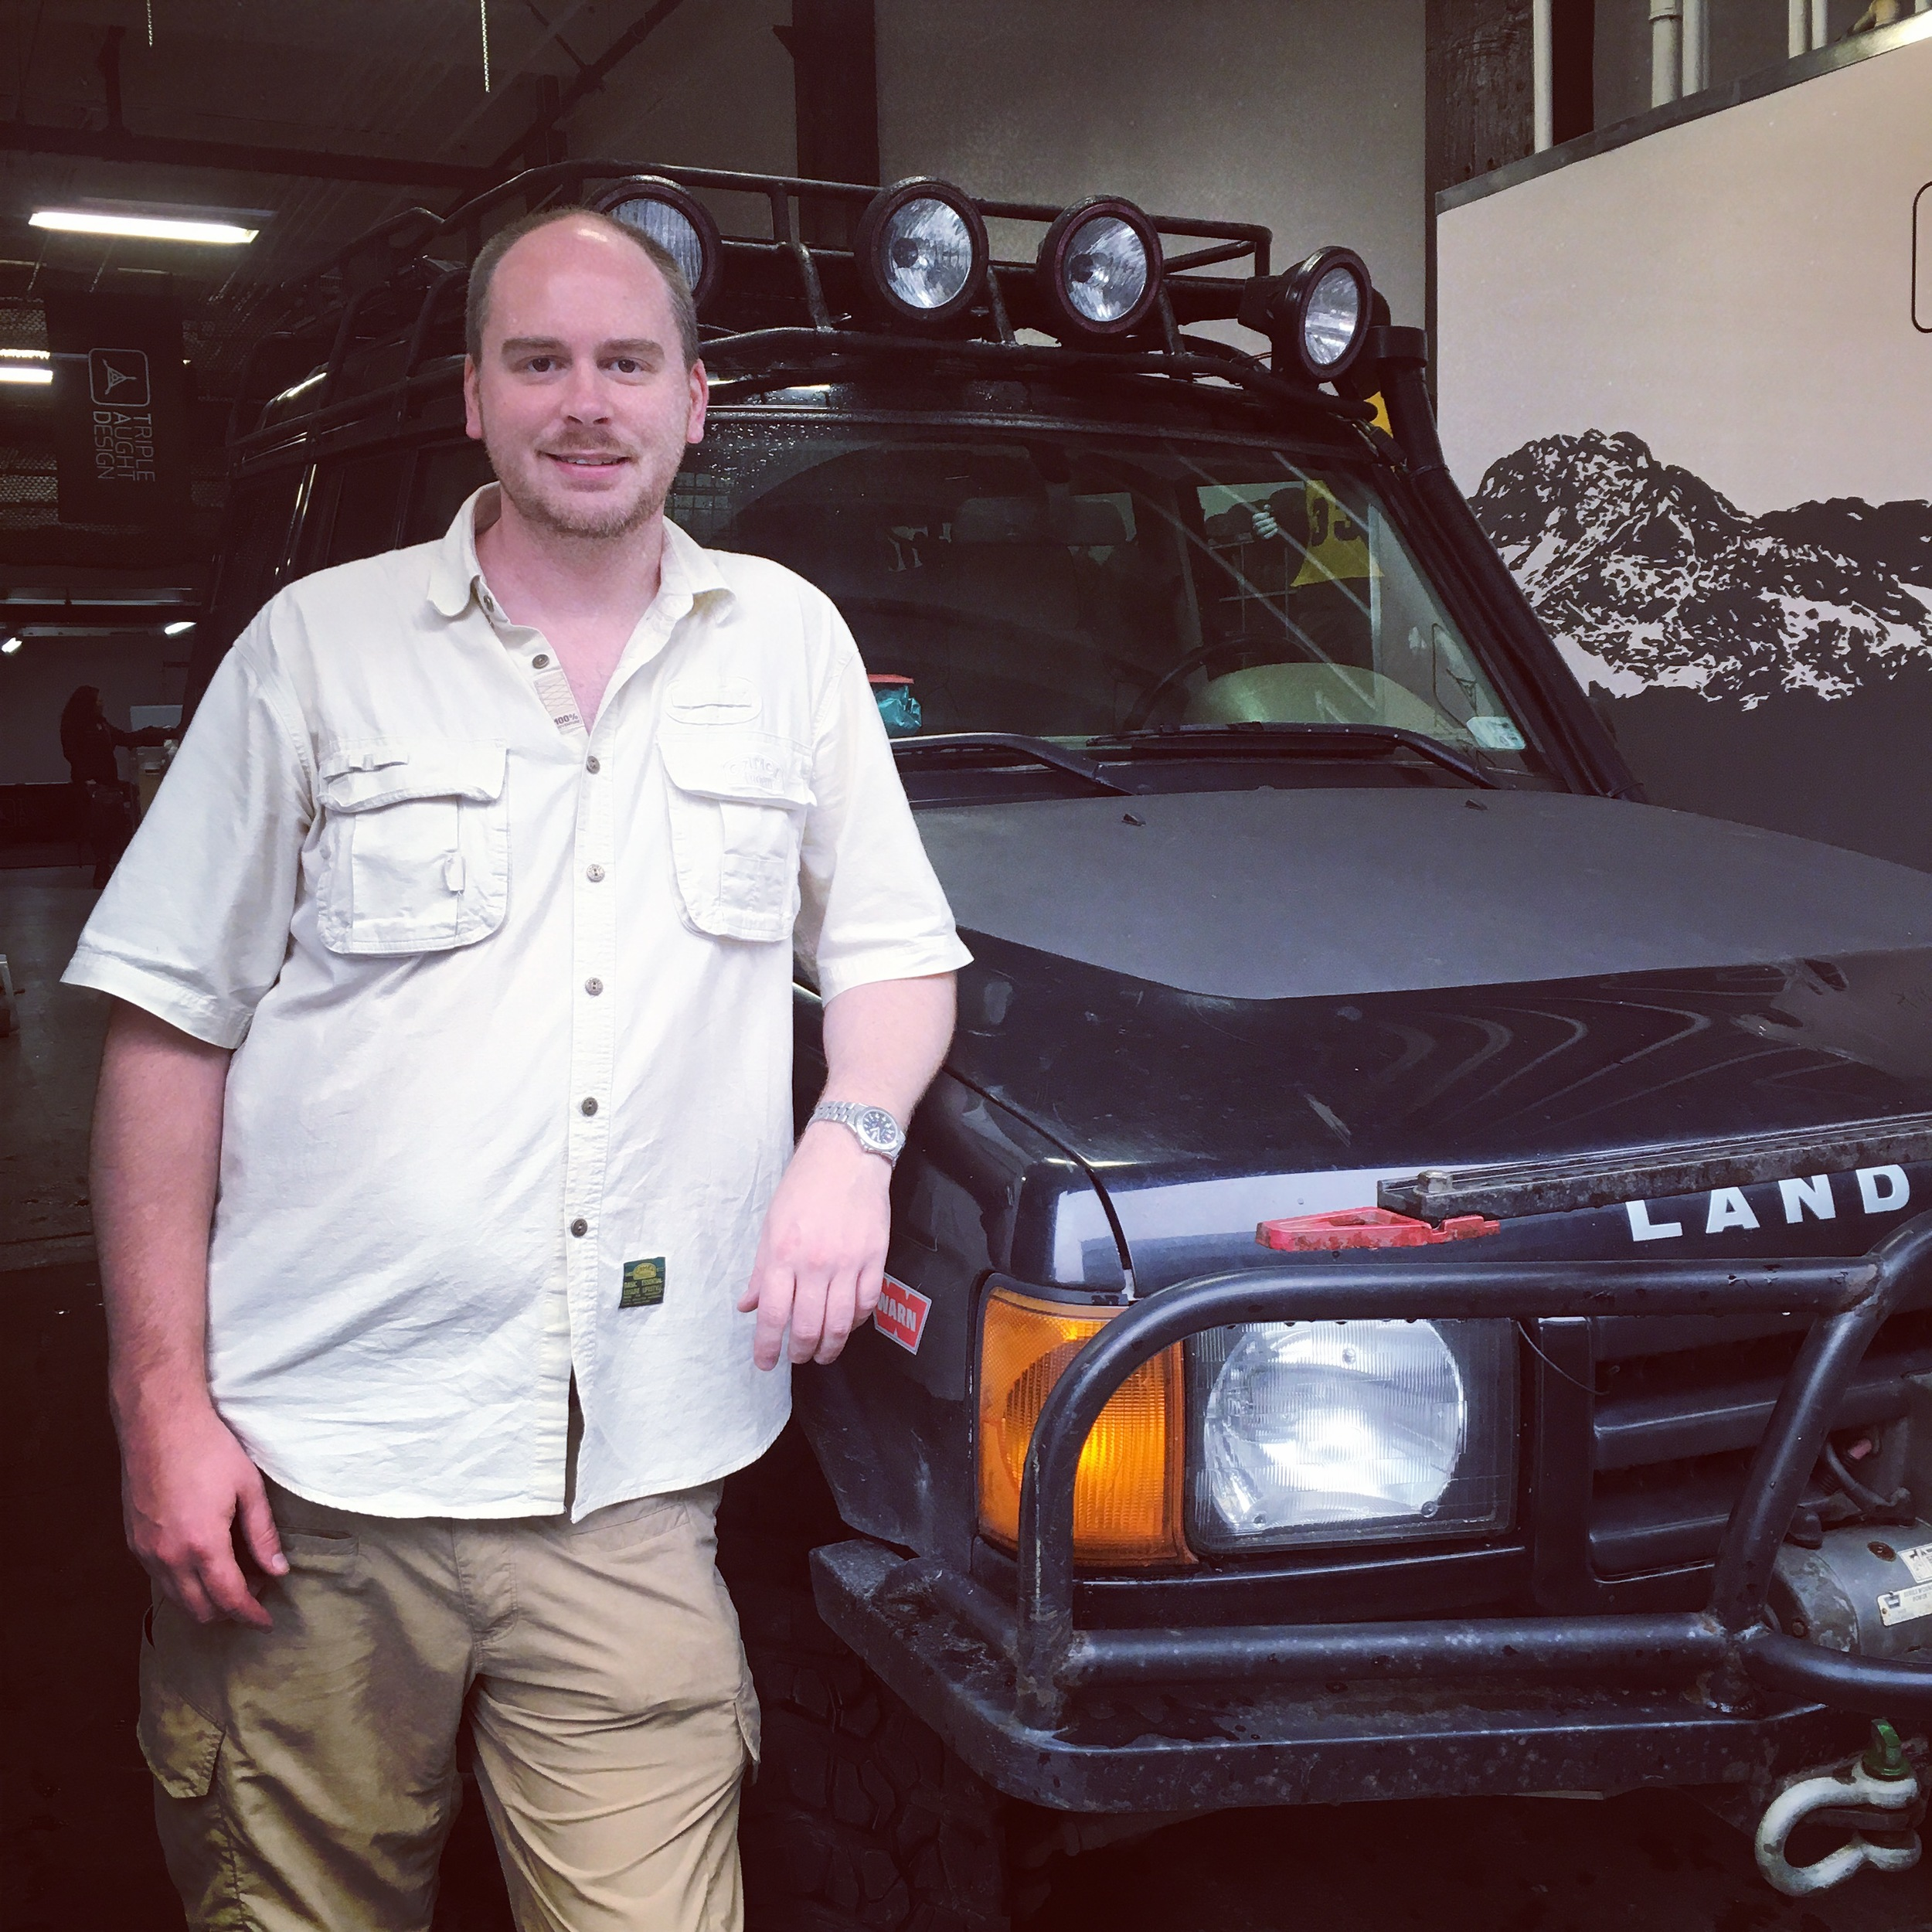 Brenton Corns, and his 2001 Land Rover Discovery 2